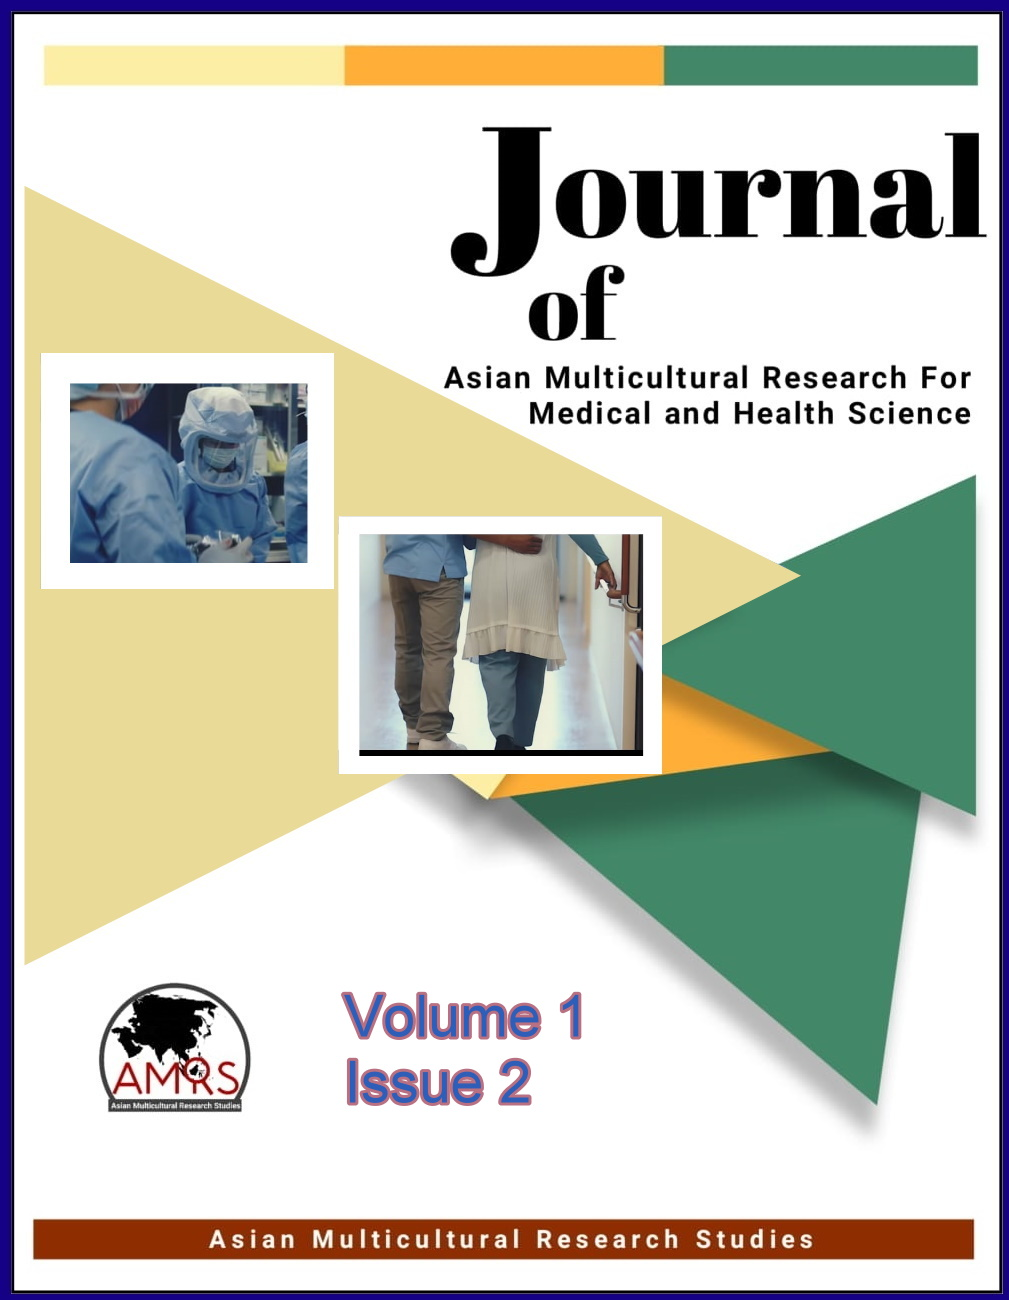 View Vol. 1 No. 2 (2020): Journal of Asian Multicultural Research for Medical and Health Science Study